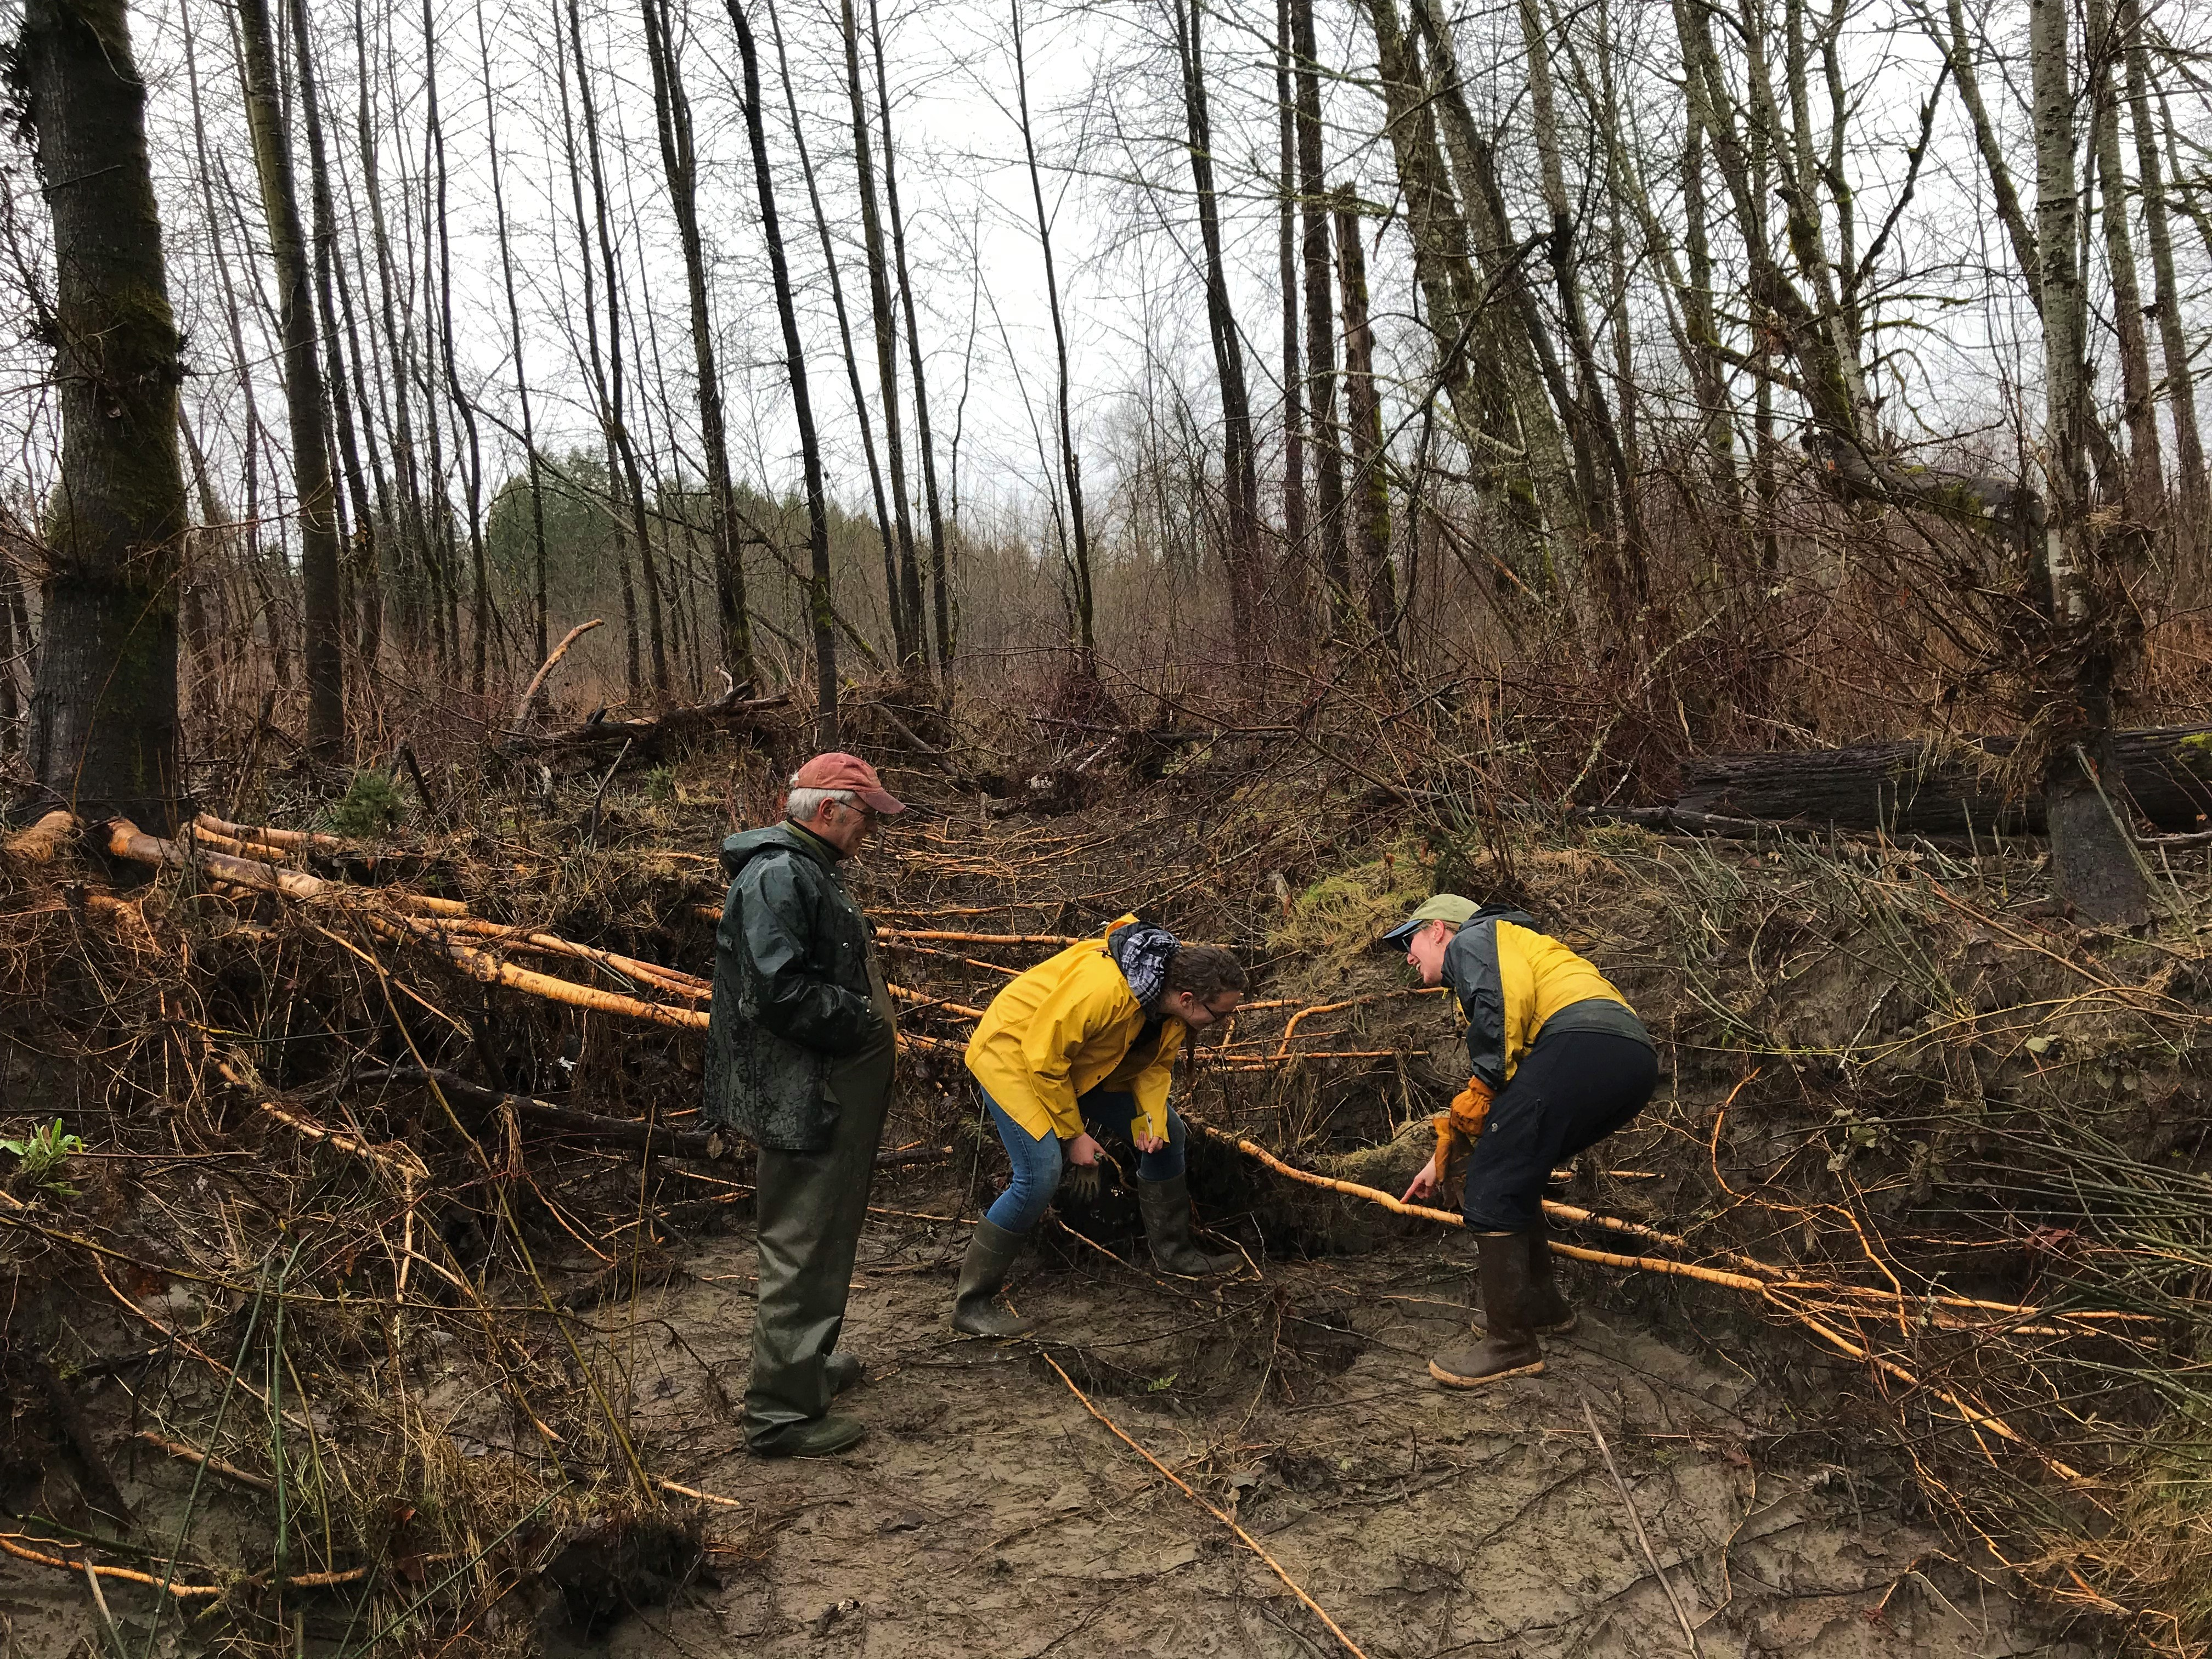 Members of the Skagit Land Trust and Skagit Fisheries Enhancement Group examine erosion from seasonal flooding at Jackman Creek Conservation Area. Photograph credit: Skagit Land Trust staff.